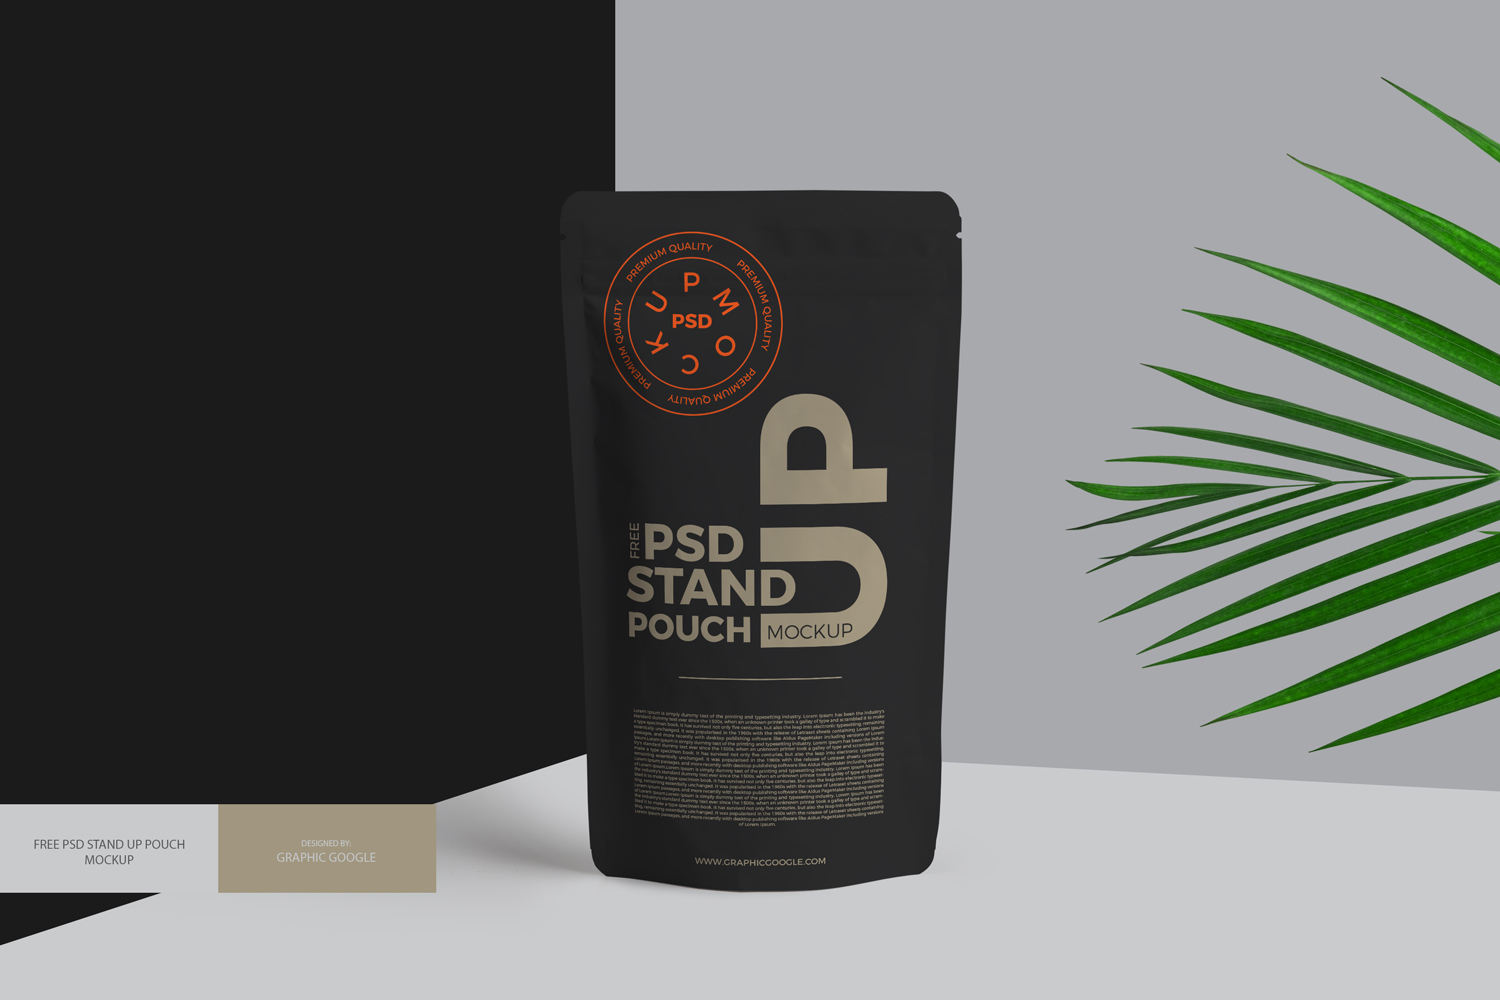 Free-Psd-Stand-Up-Pouch-Mockup